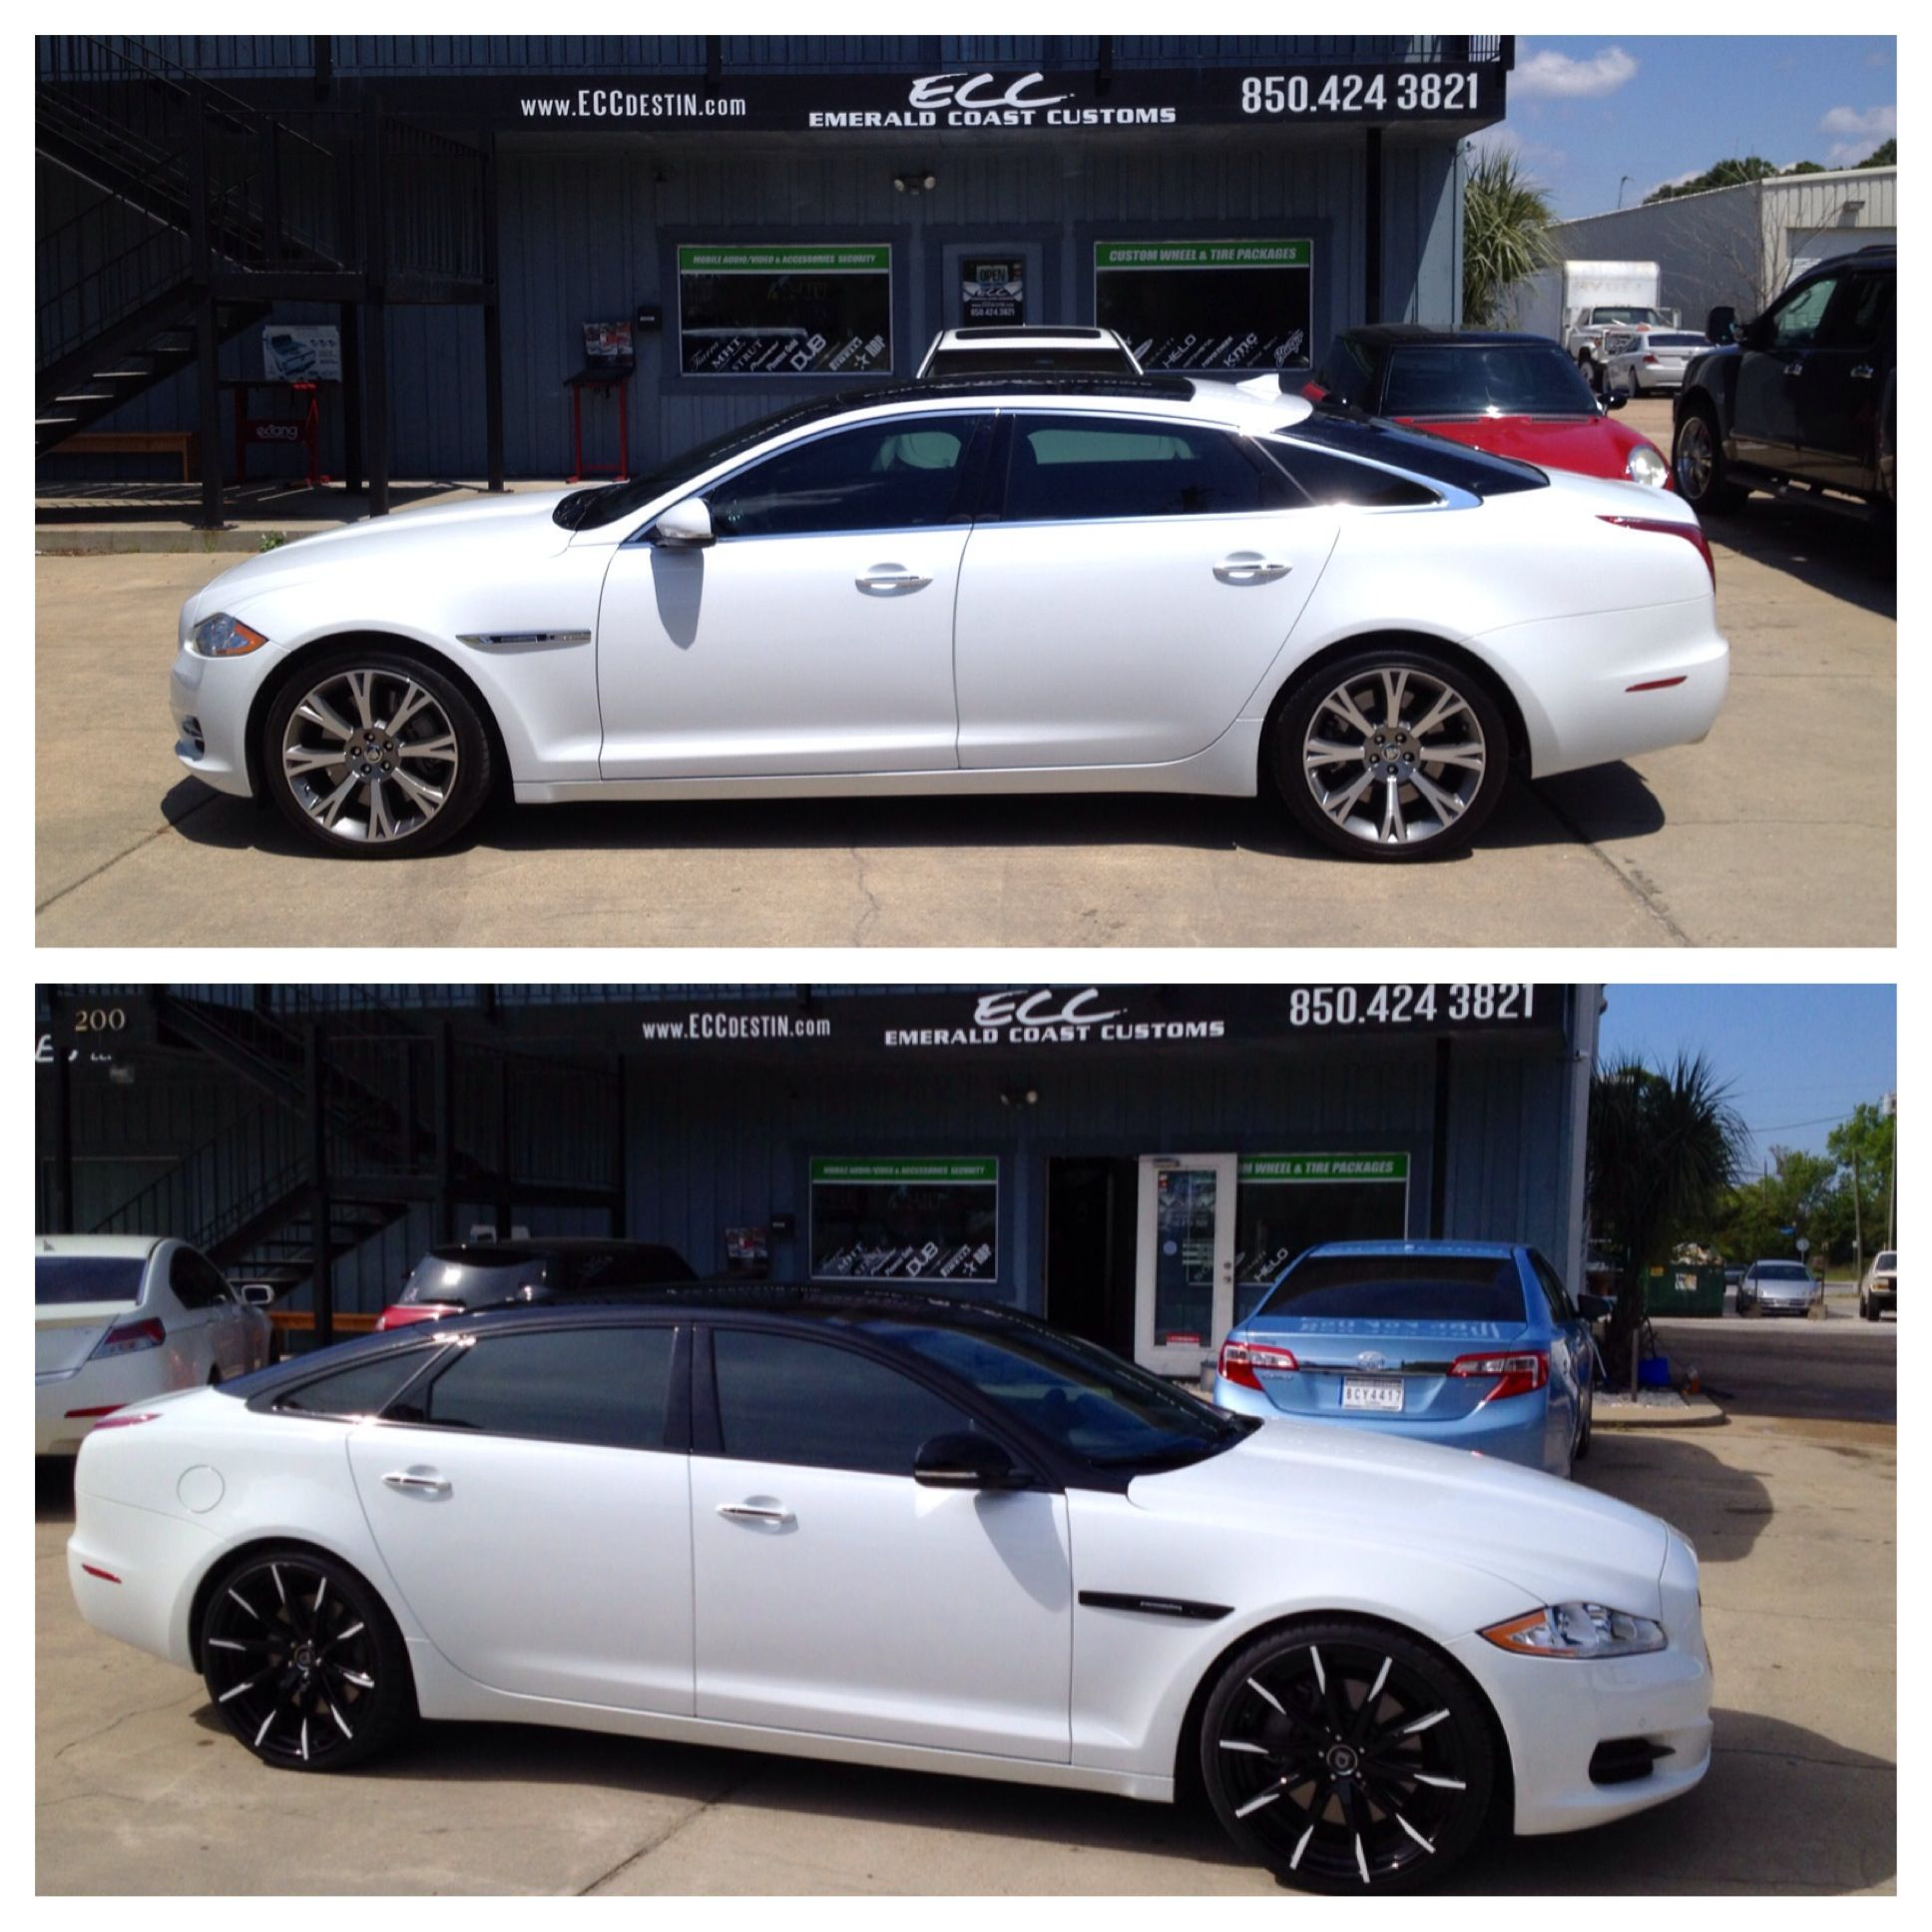 2014 Jaguar Xjl Supercharged W Custom Paint 22 Quot Lexani